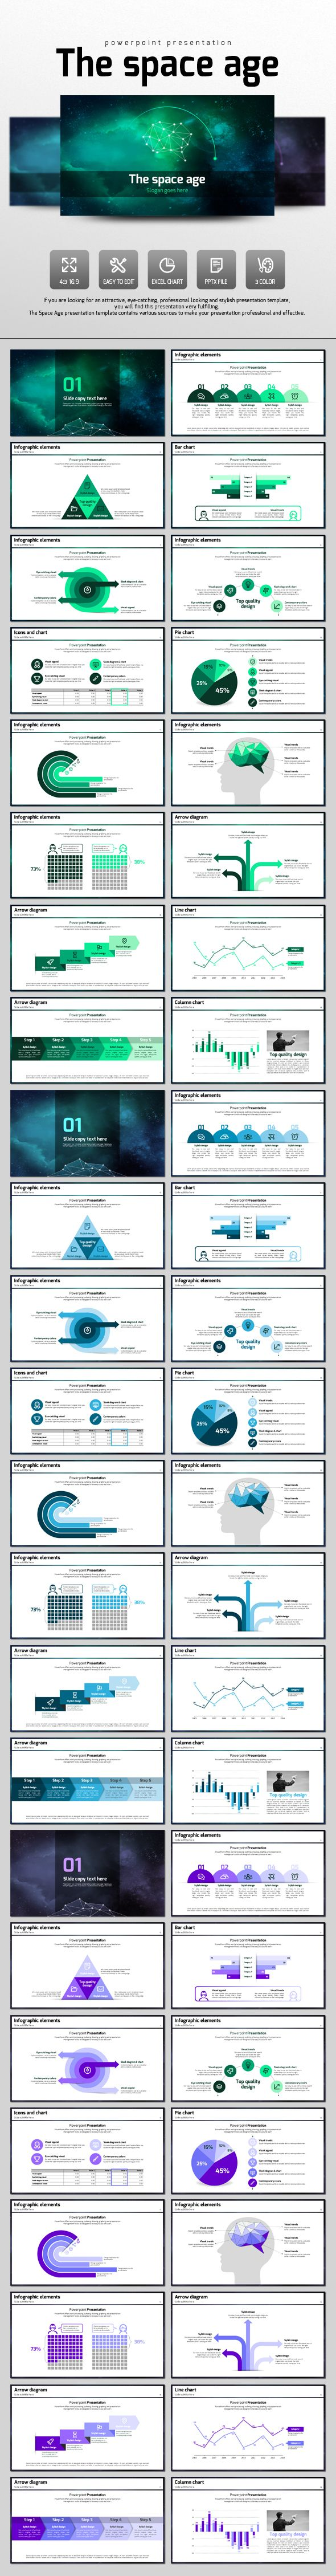 The Space Age PowerPoint Template #design #slides Download: http://graphicriver.net/item/the-space-age/13166450?ref=ksioks